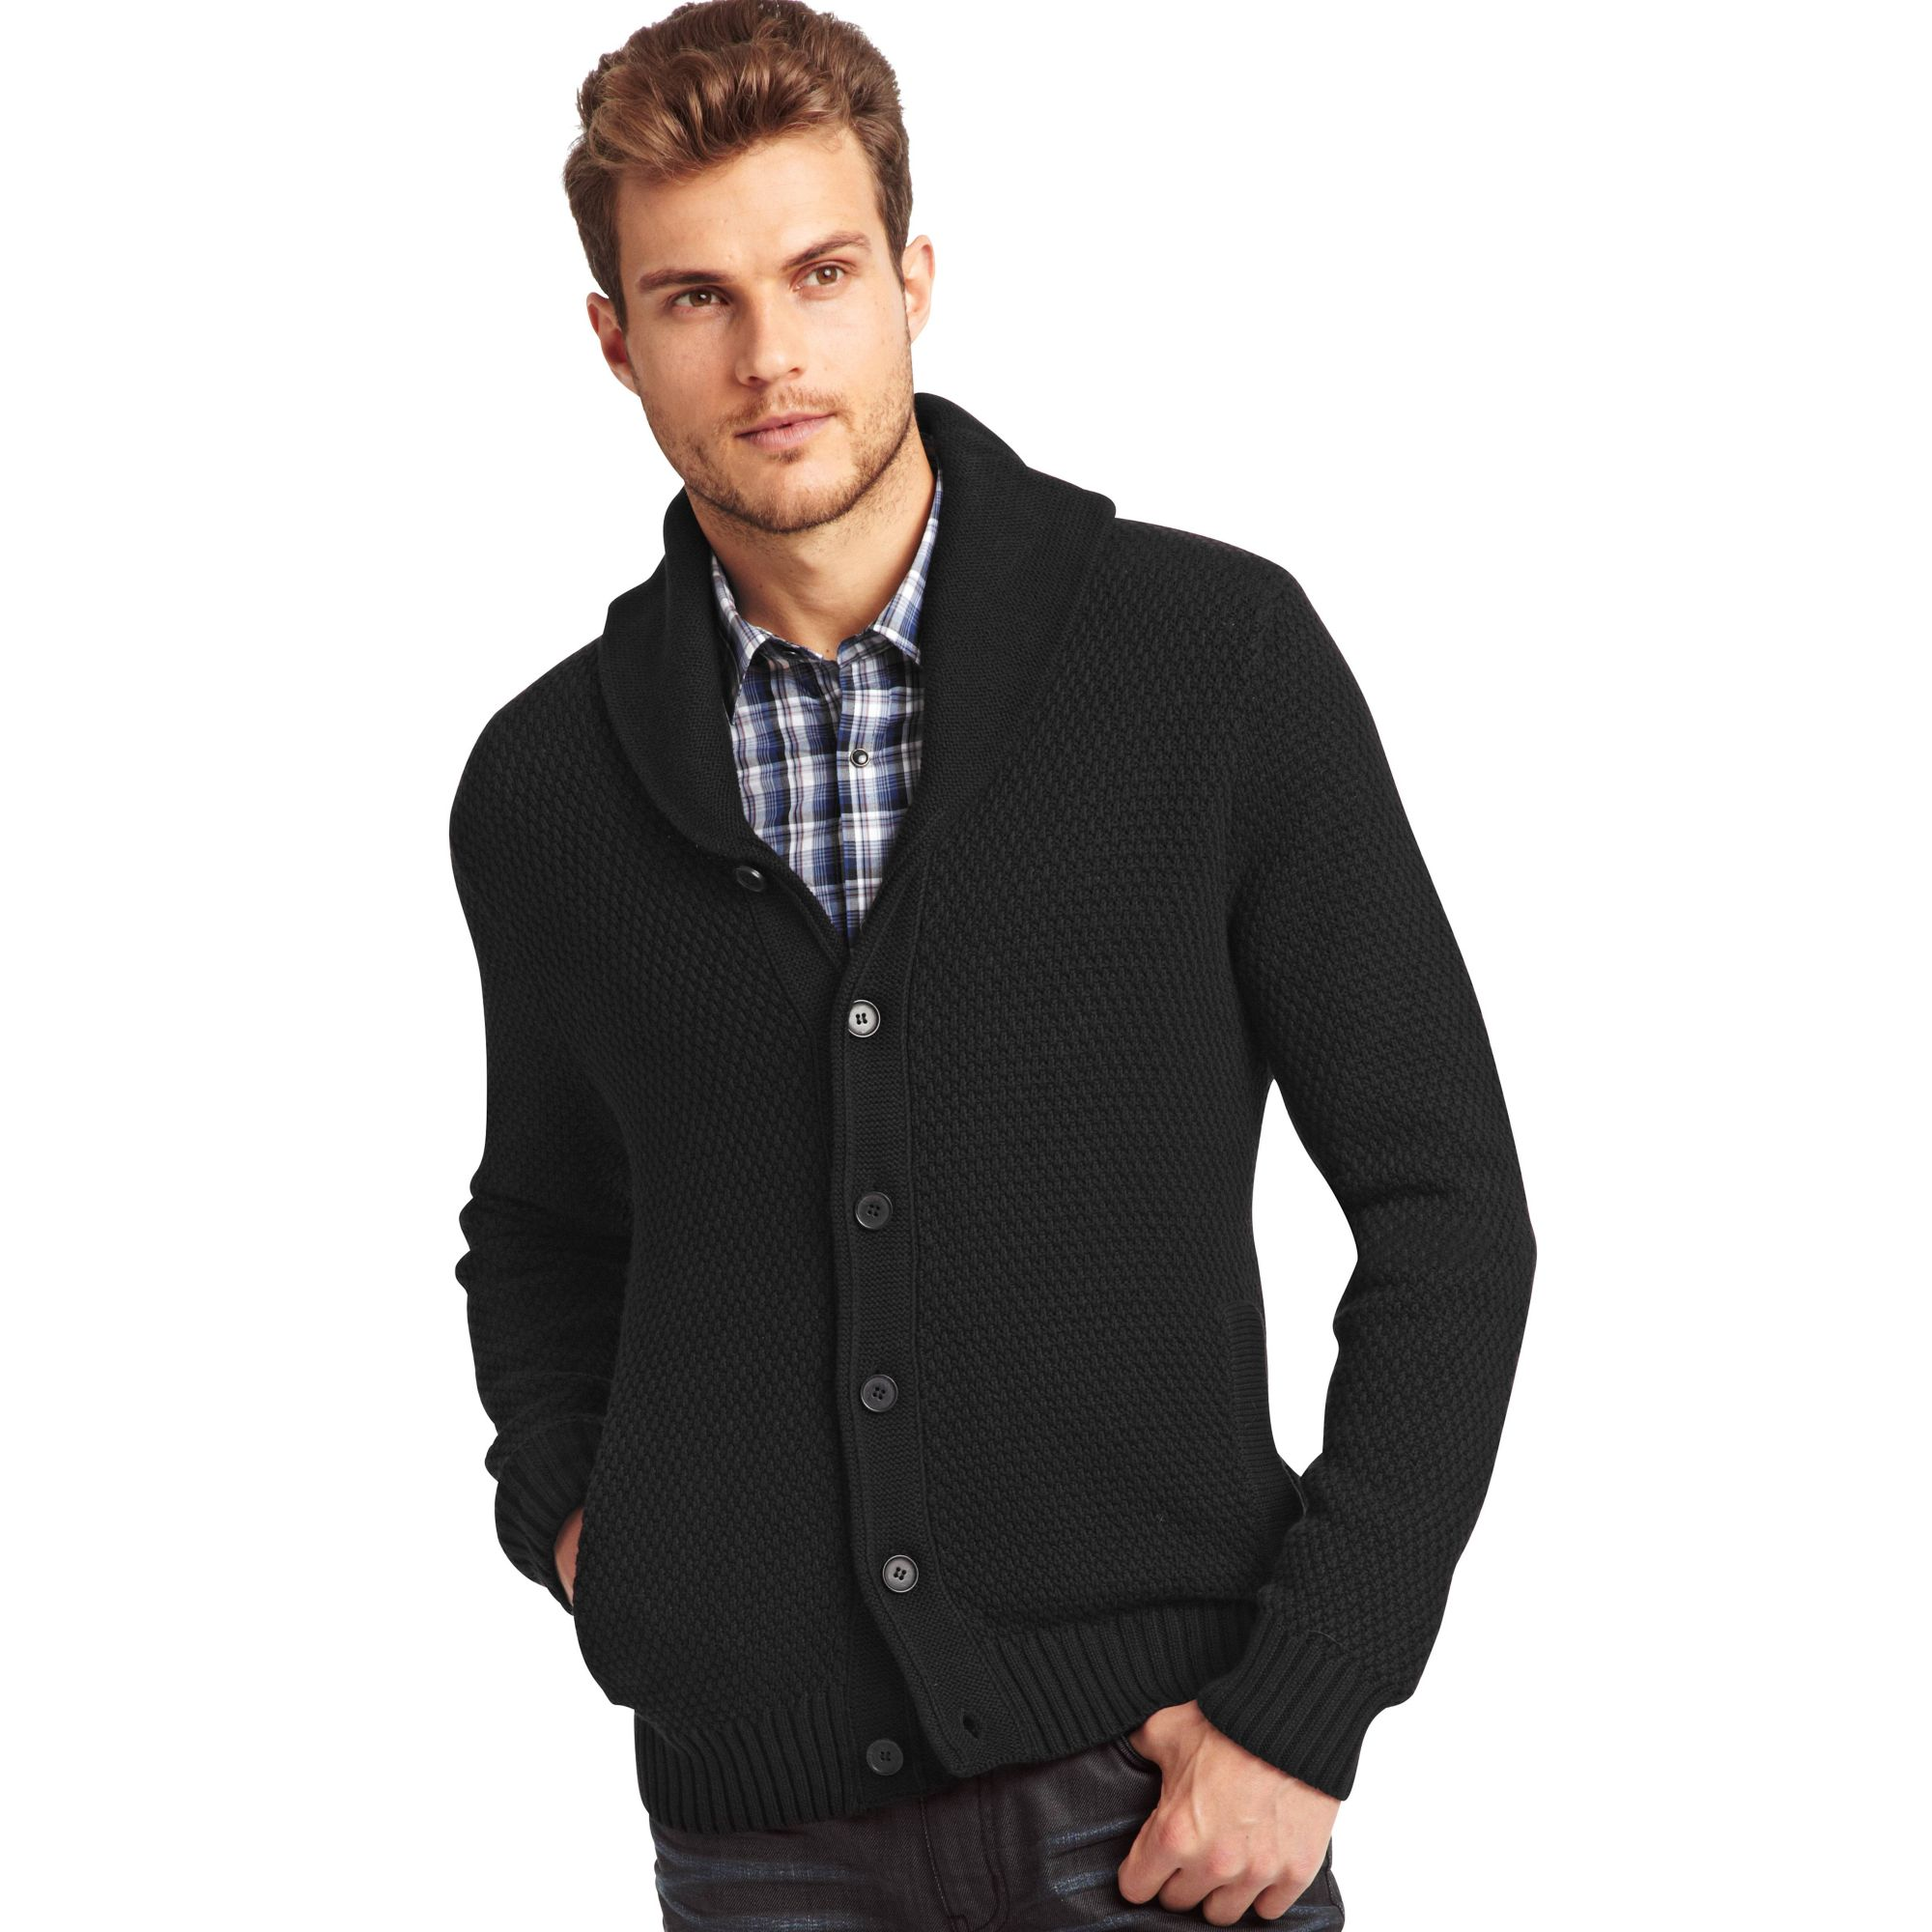 Mainline Menswear Sale Cheap designer clothes From designer Fred Perry t-shirts and Hugo Boss jeans, to Calvin Klein underwear and Superdry shirts.